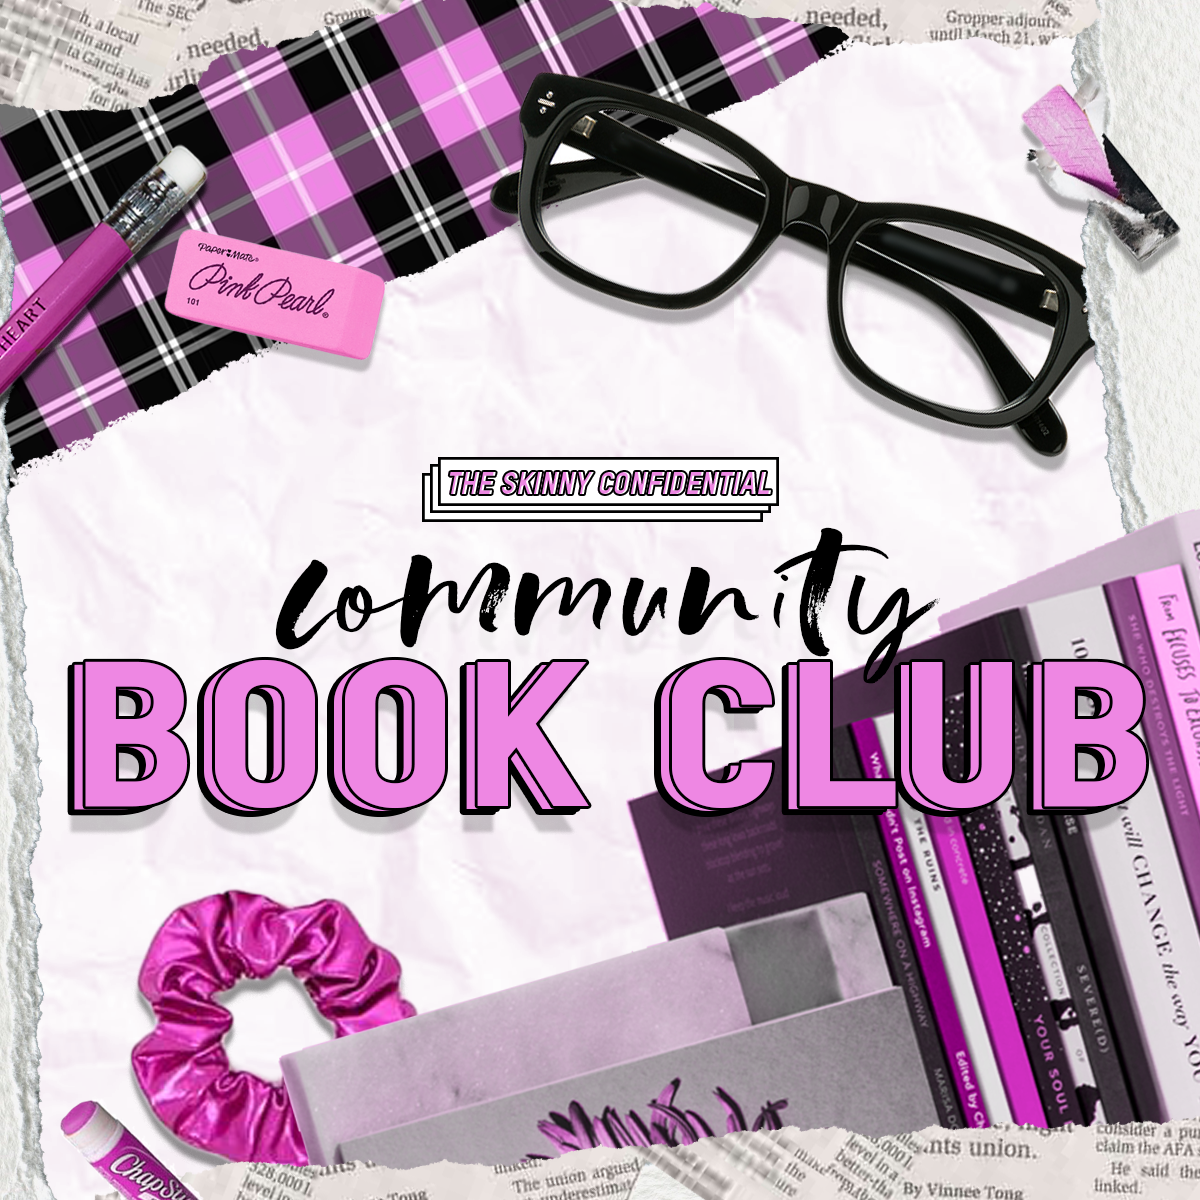 The Skinny Confidential Community Book Club